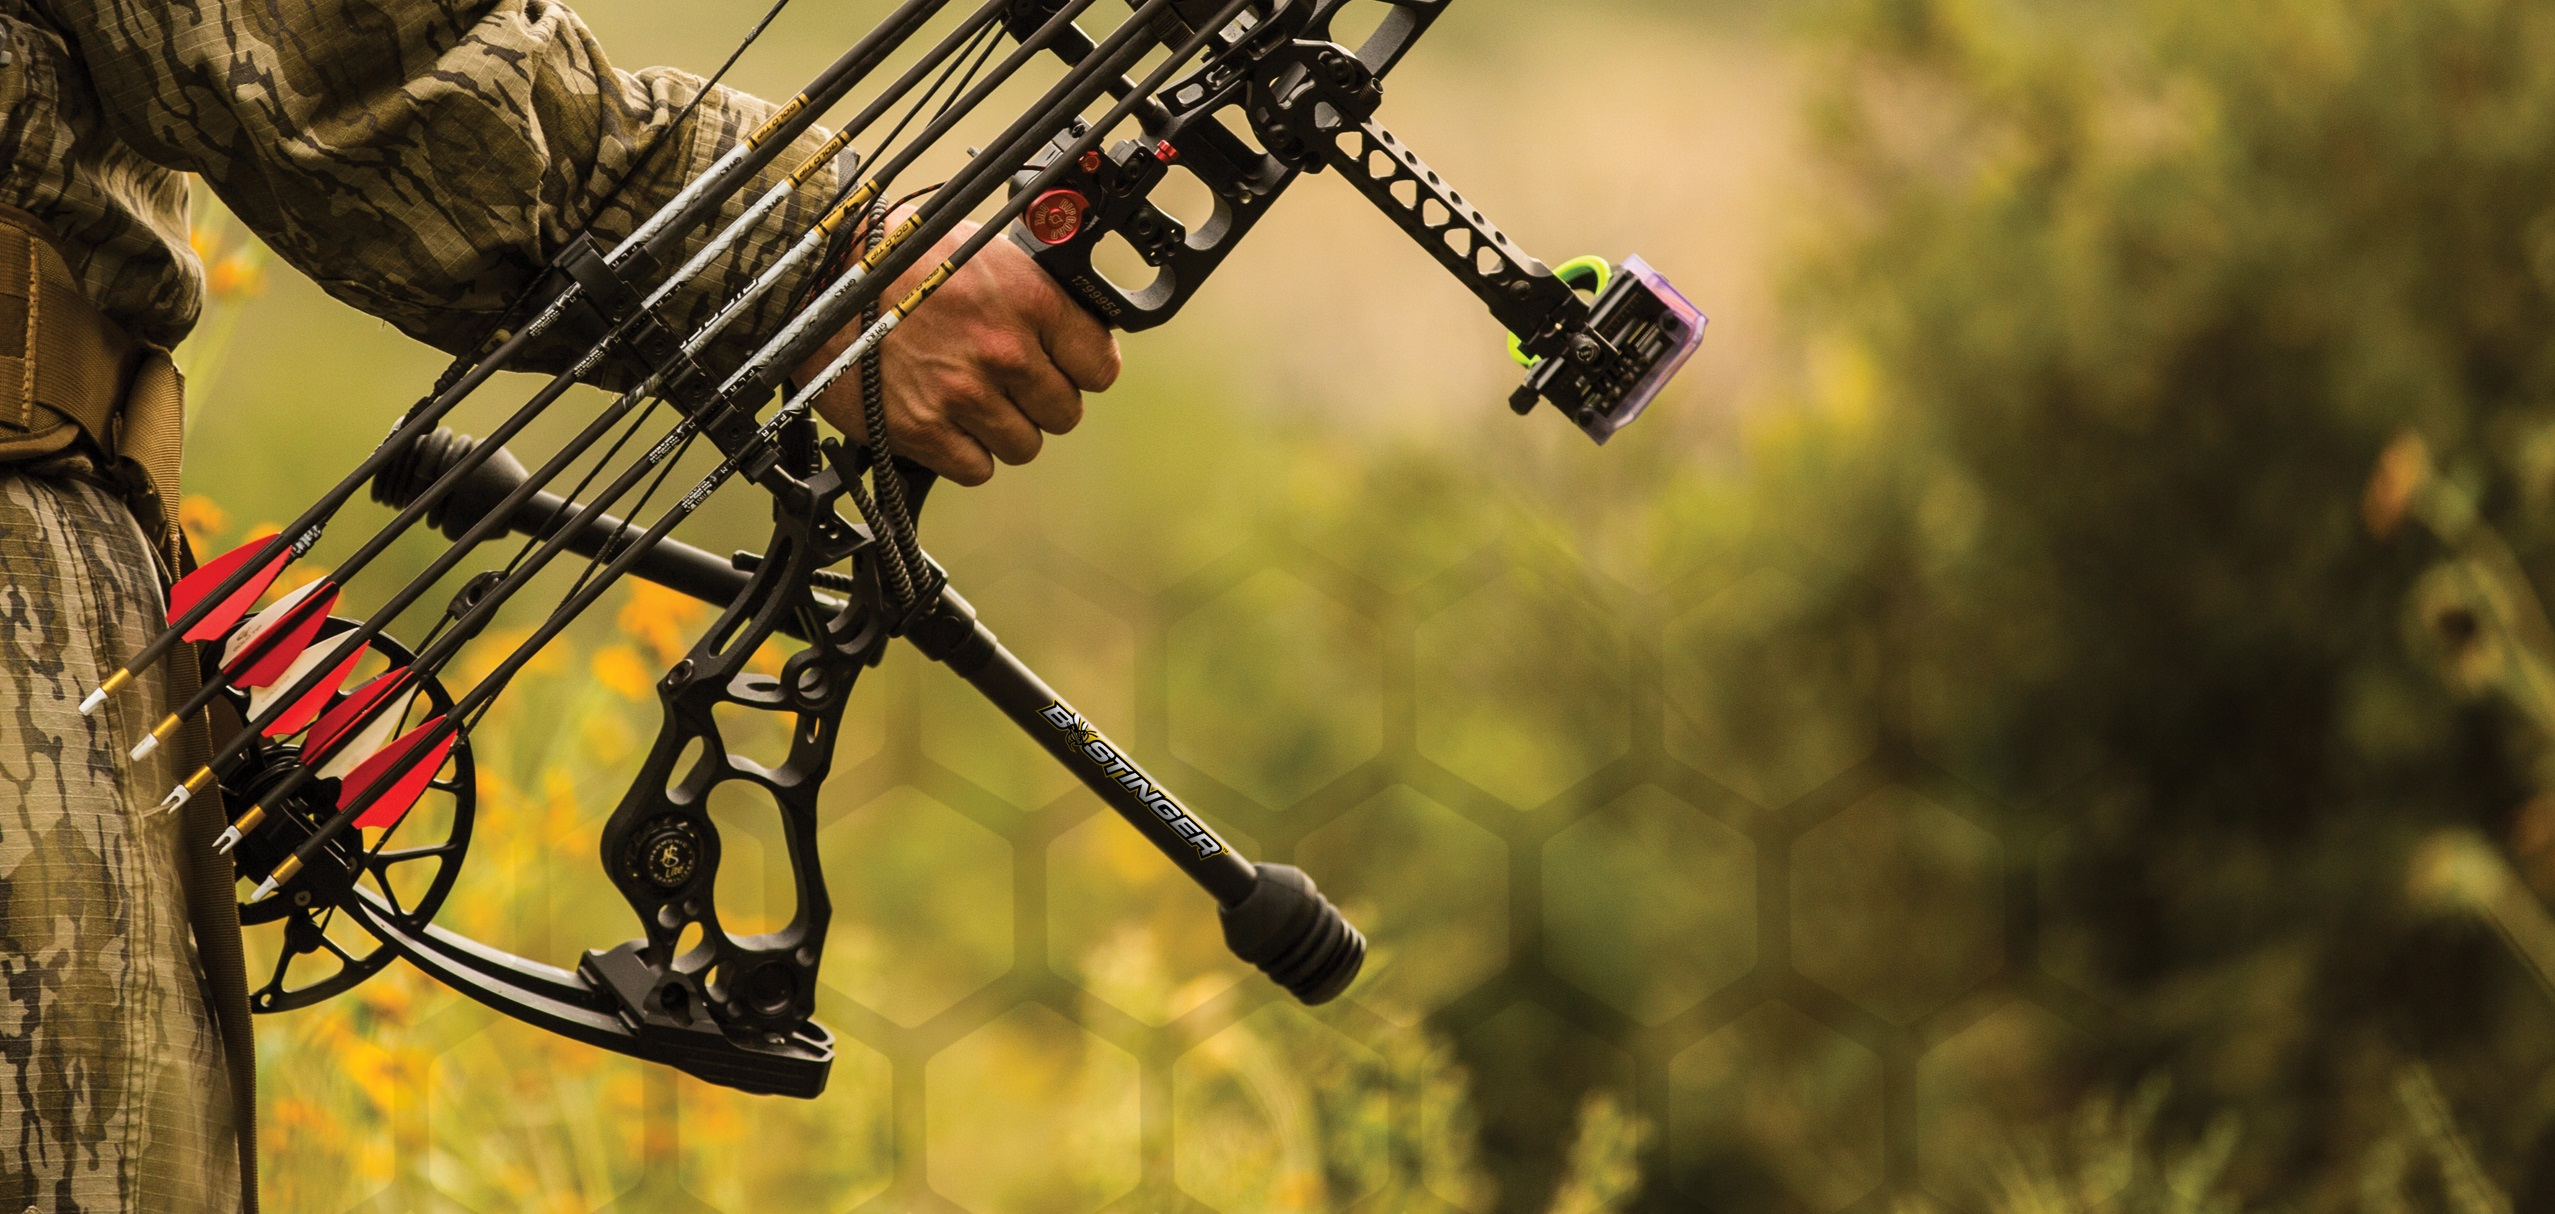 TOP 8 Best Bow Stabilizers – Reviews in 2021